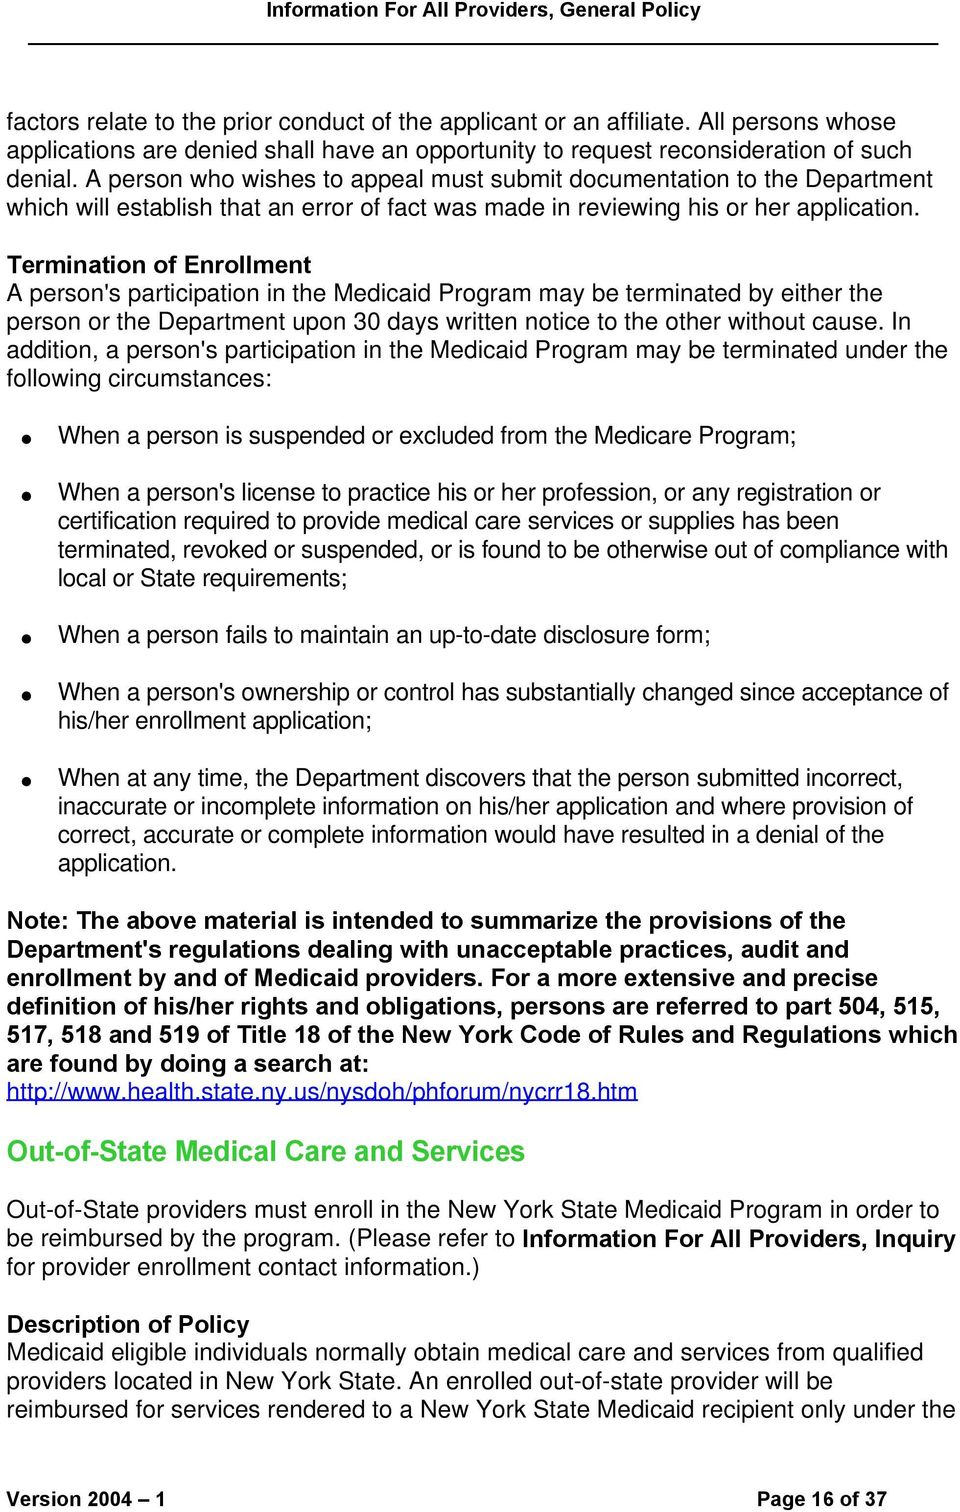 Termination of Enrollment A person's participation in the Medicaid Program may be terminated by either the person or the Department upon 30 days written notice to the other without cause.